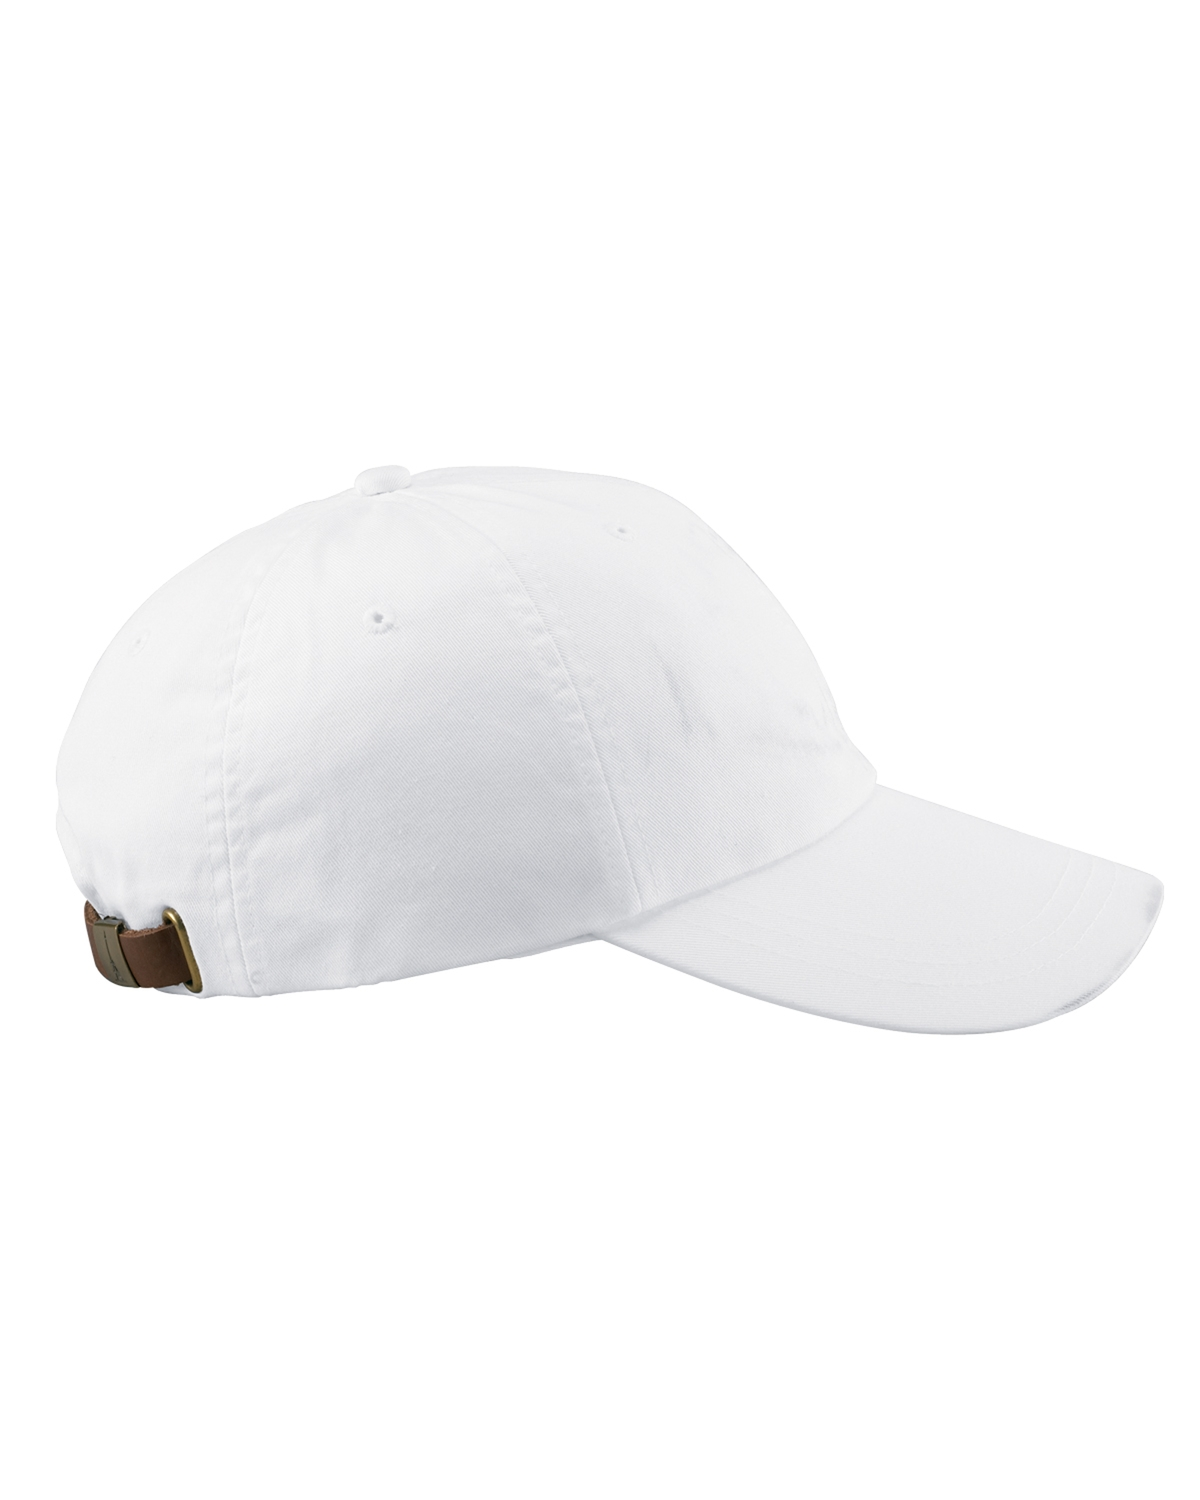 Adams AD969 - Optimum Pigment-Dyed Cap